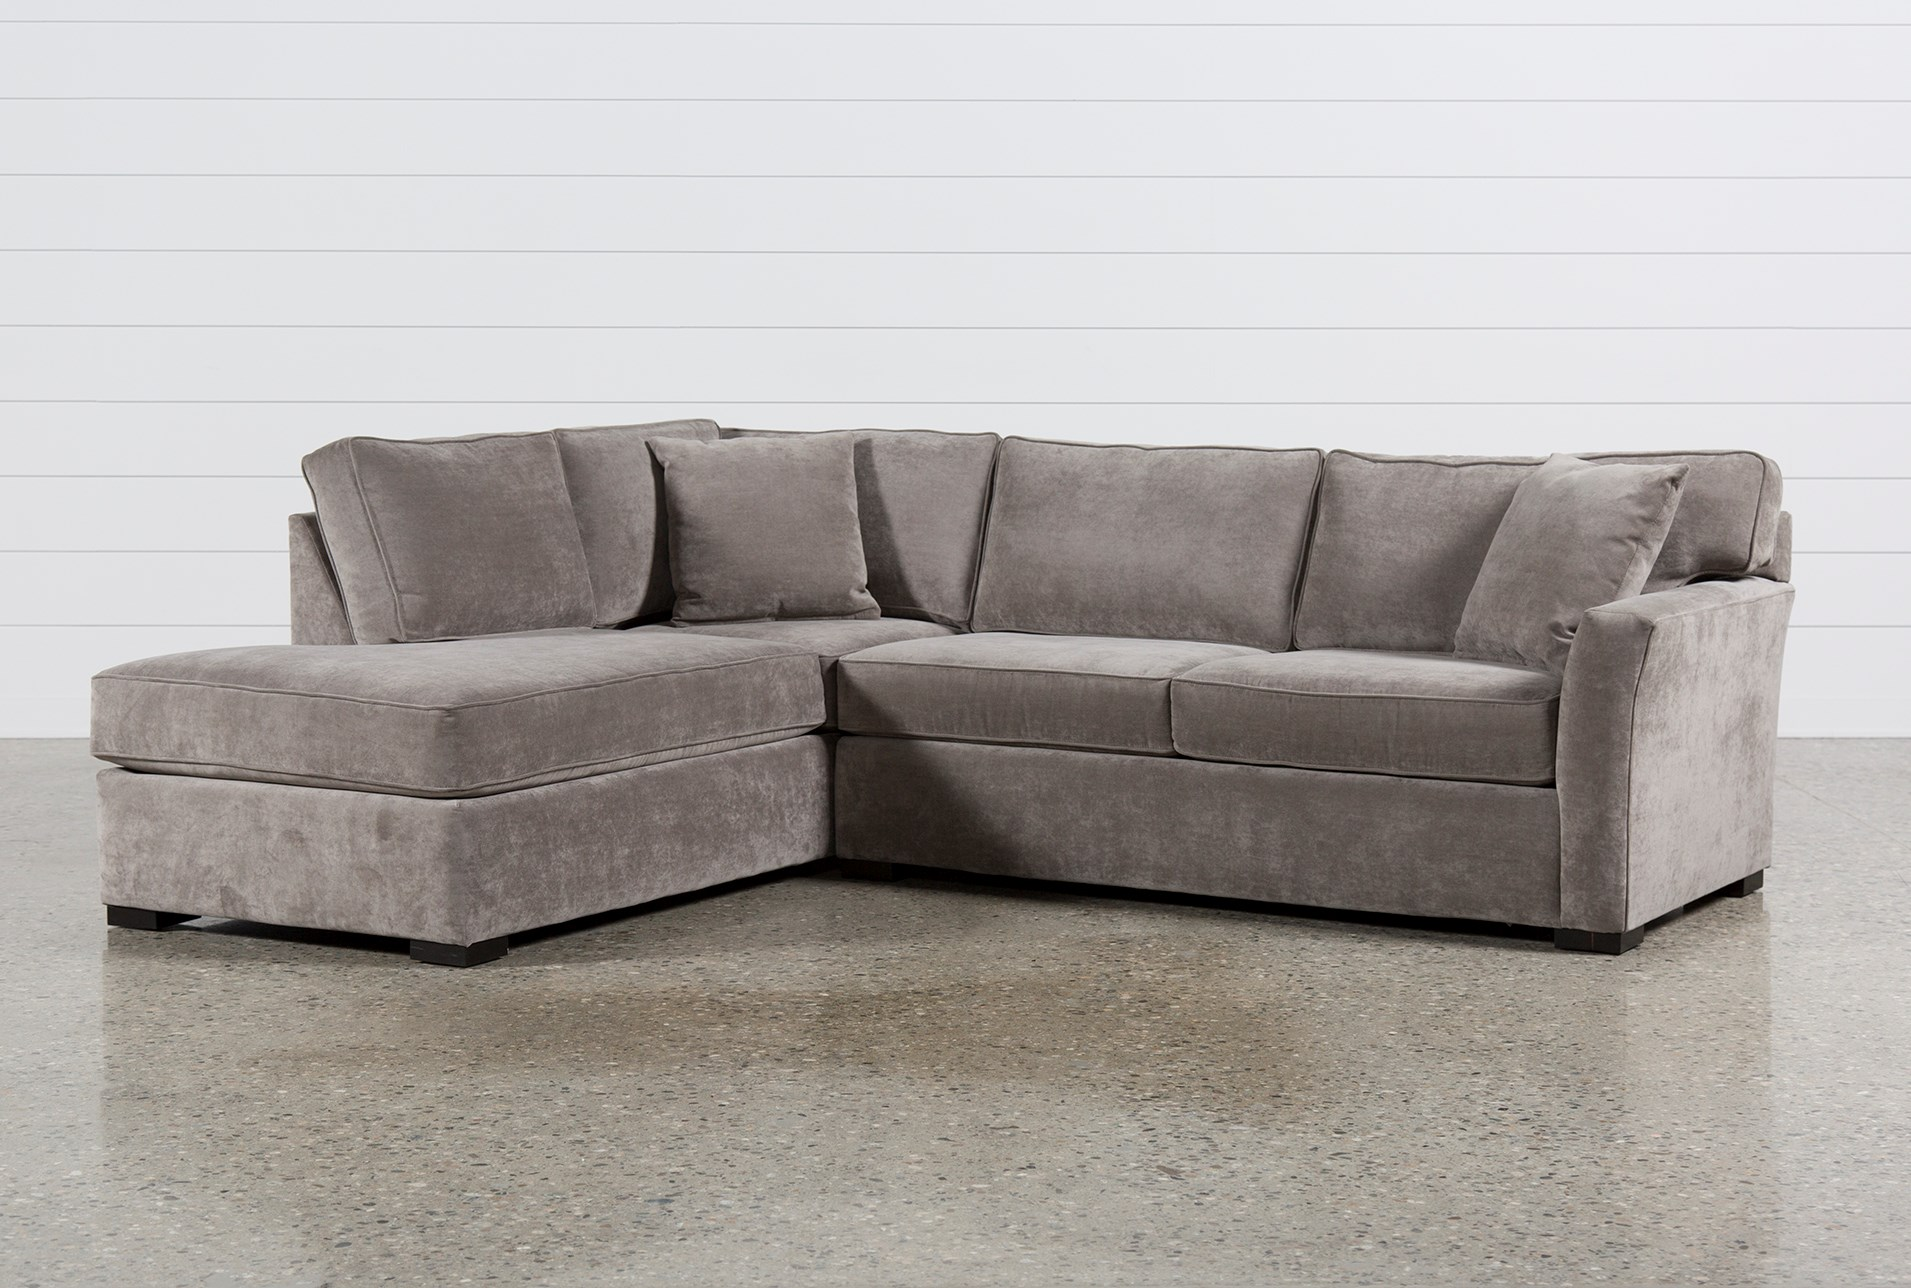 simmons lounging for custom as lowe is manhattan the great around pin piece this leather our room sofa ideas seat looks a on sectional sofas and deep